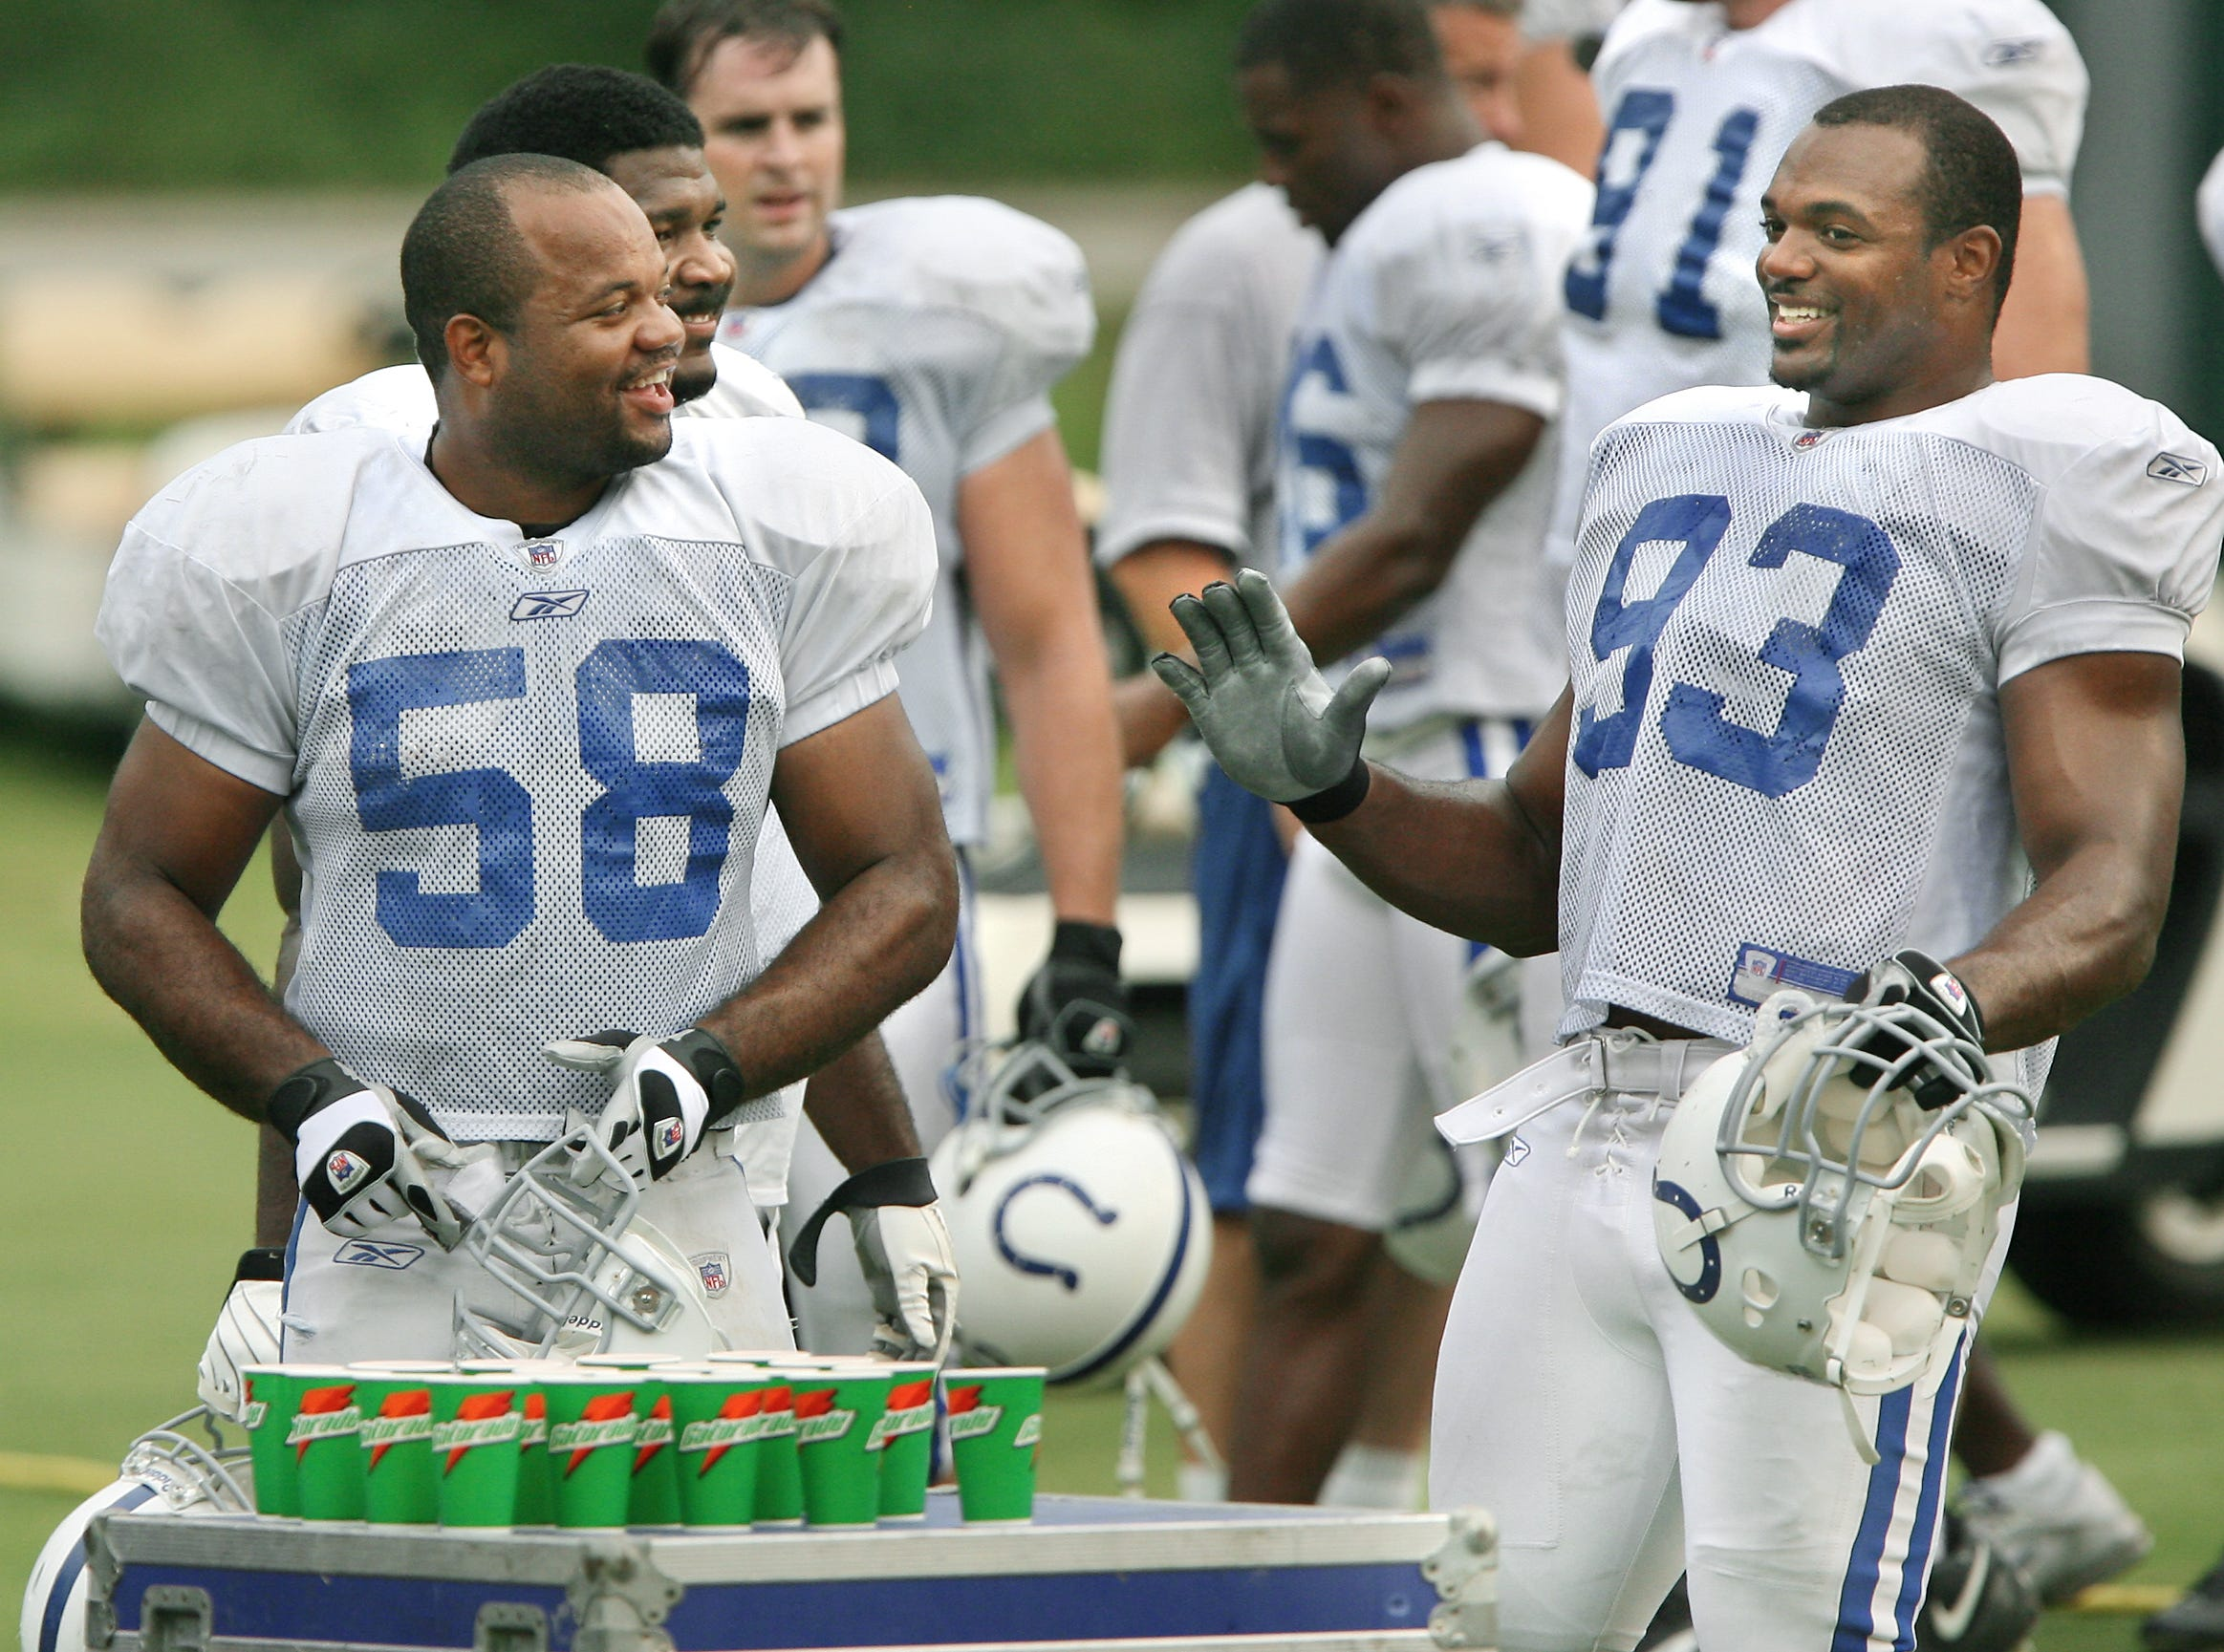 (From left) Colts linebacker Gary Brackett shares a laugh with teammate and defensive end Dwight Freeney as they take a water break during practice at Rose Hulman Institute of Technology on Wednesday, August 15, 2007.